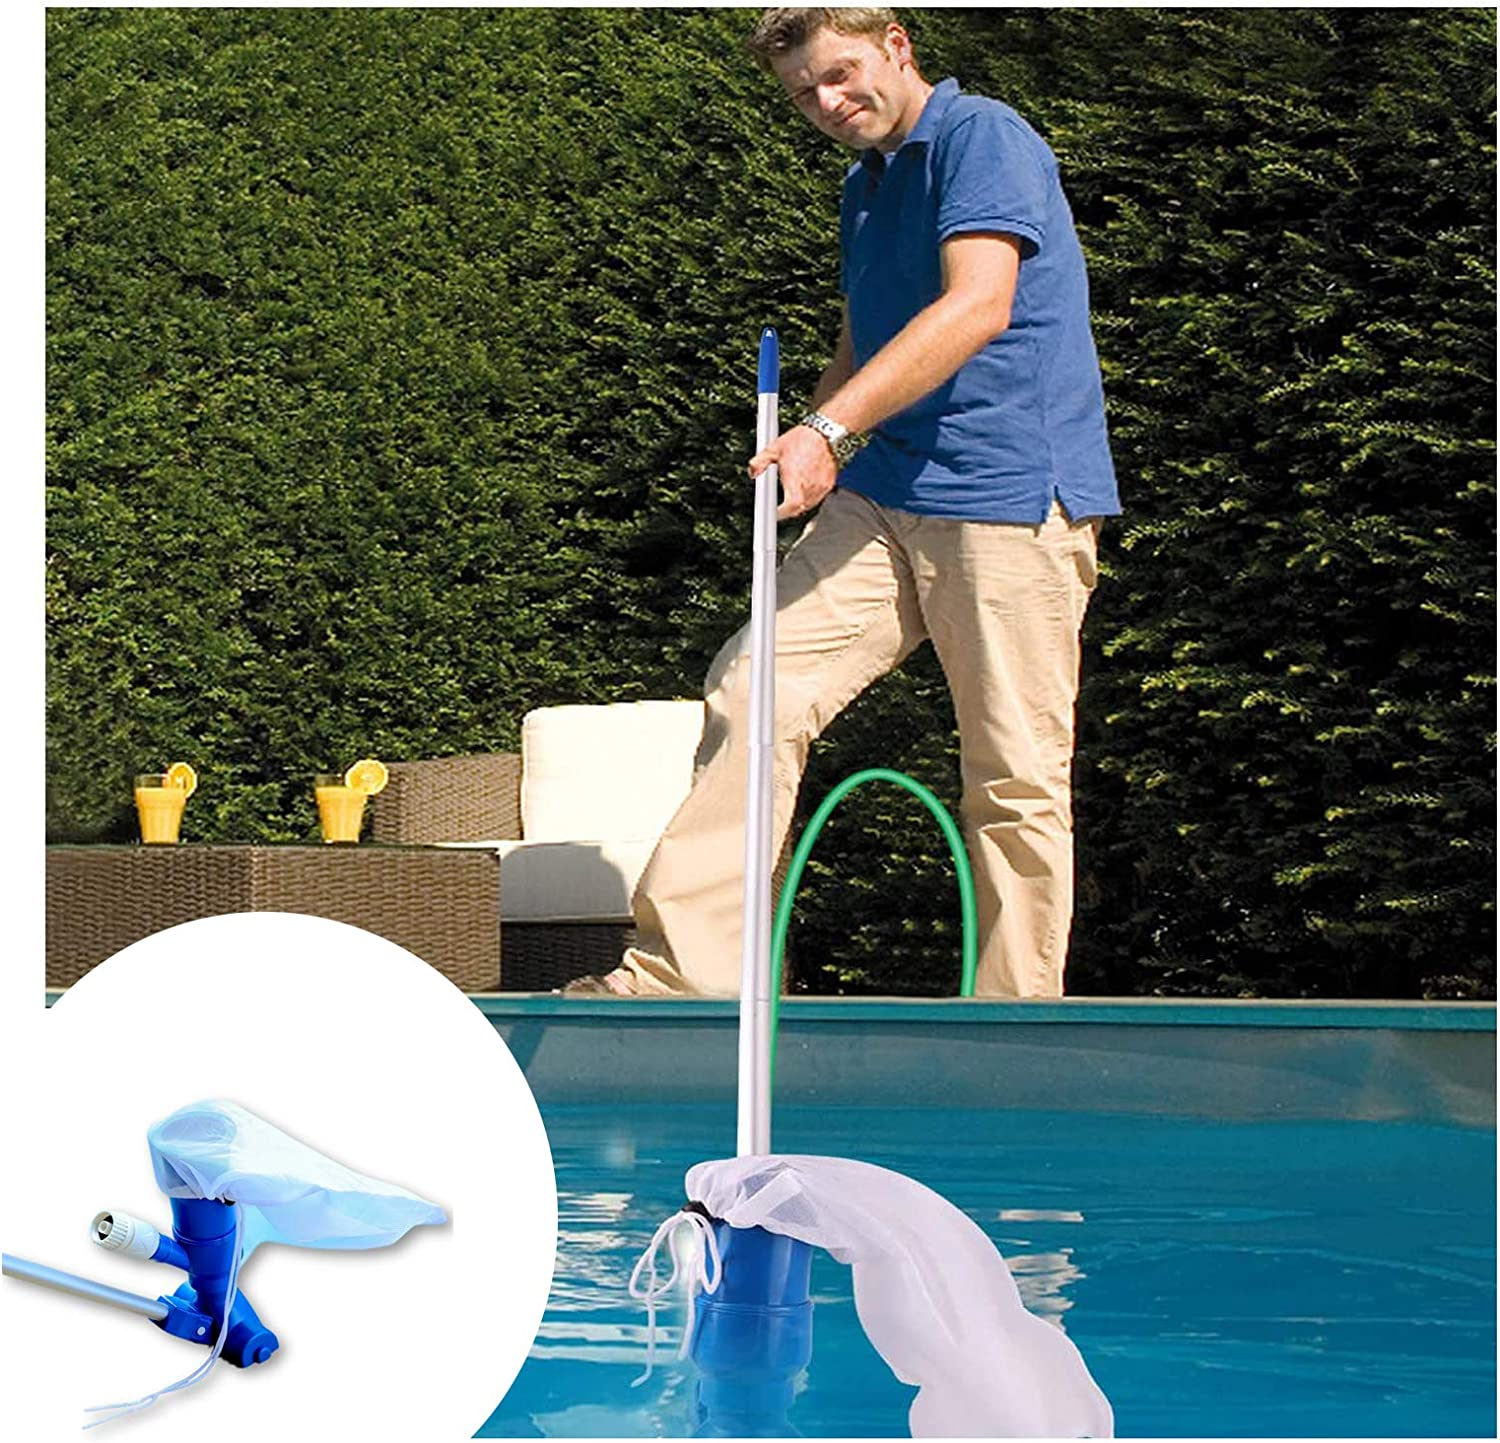 Swimming Pool Handheld Vacuums Hydraulic Uncharged Vacuum Max 80% OFF free shipping C